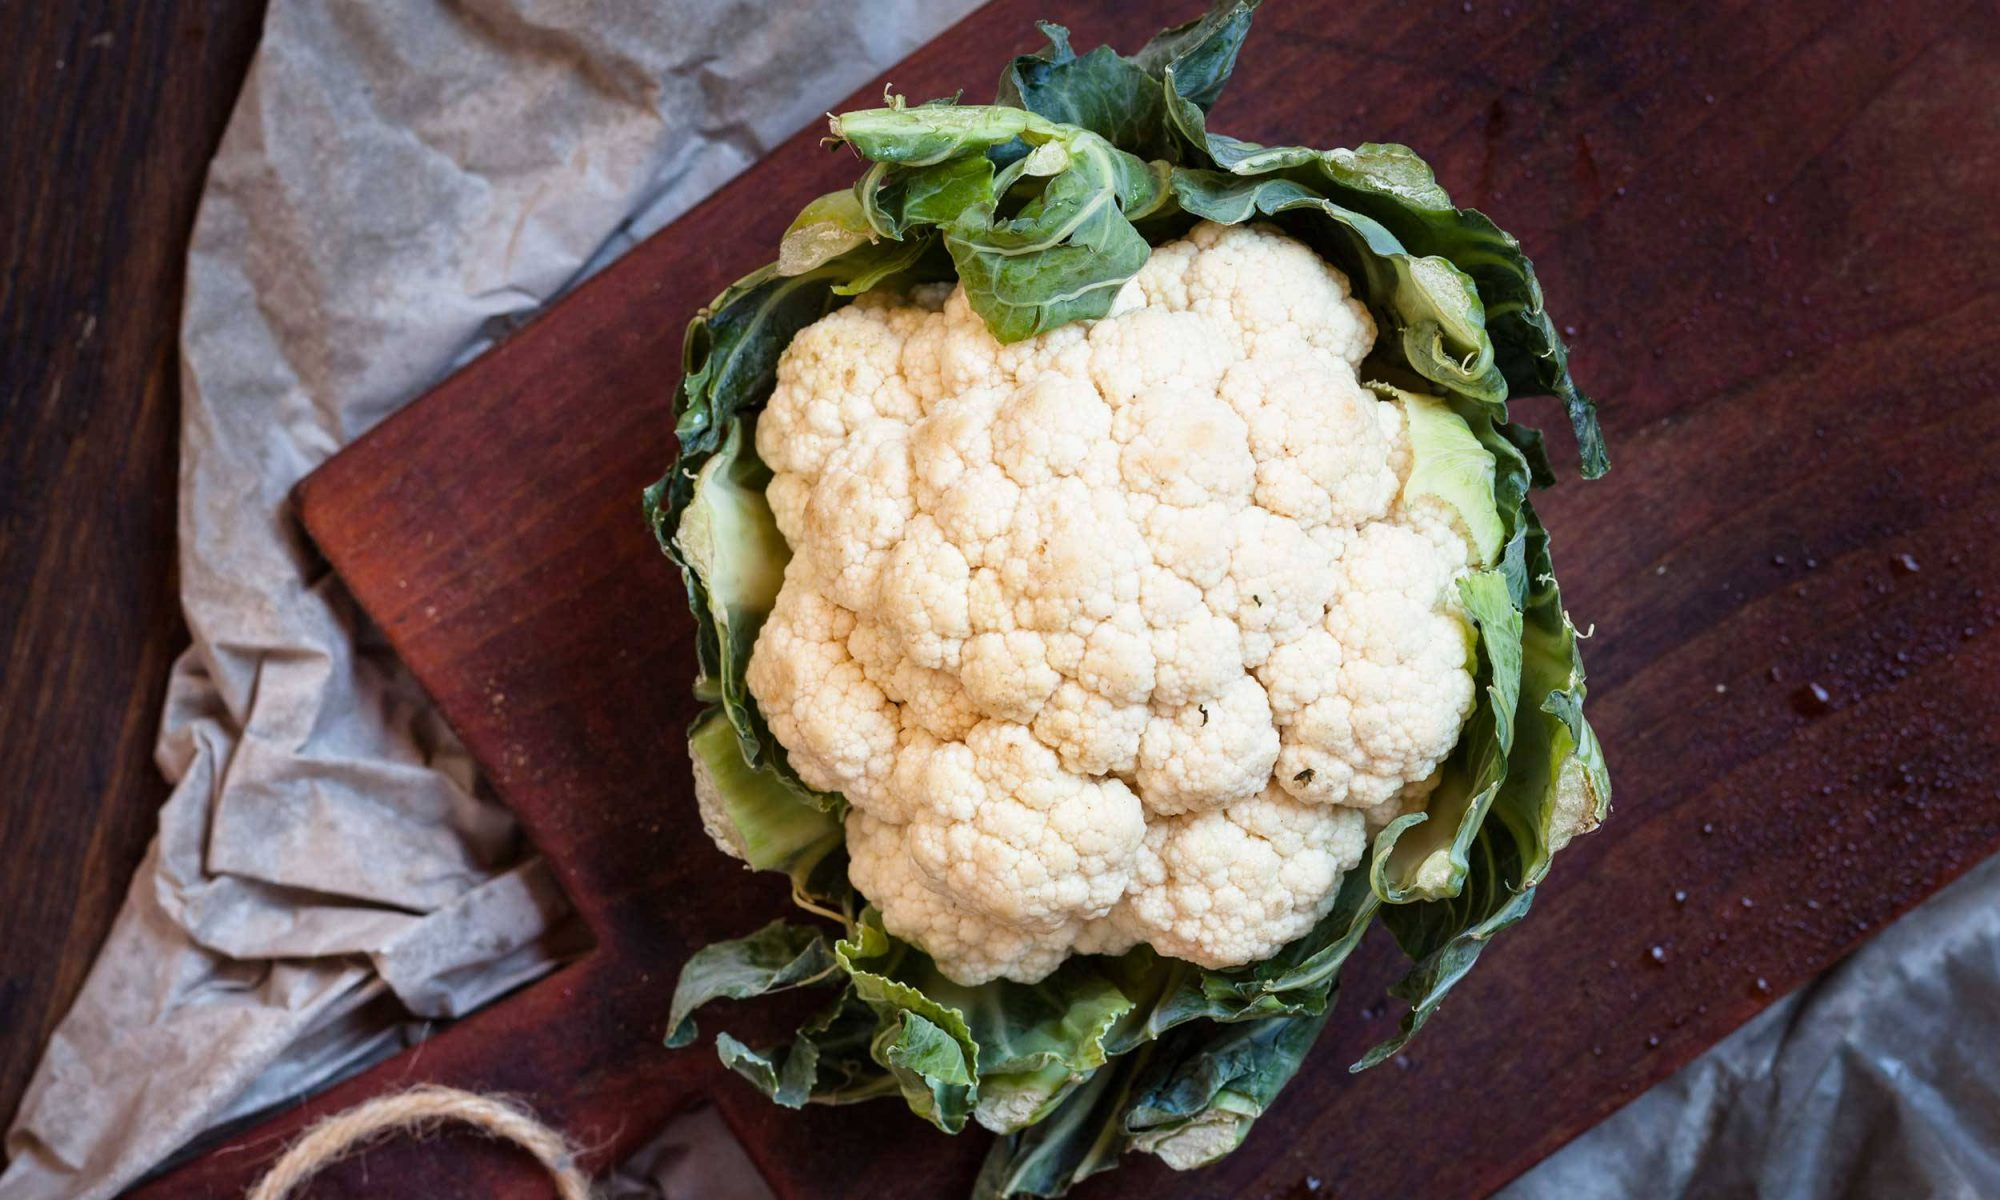 How to Store Cauliflower So It Doesn't Turn Brown